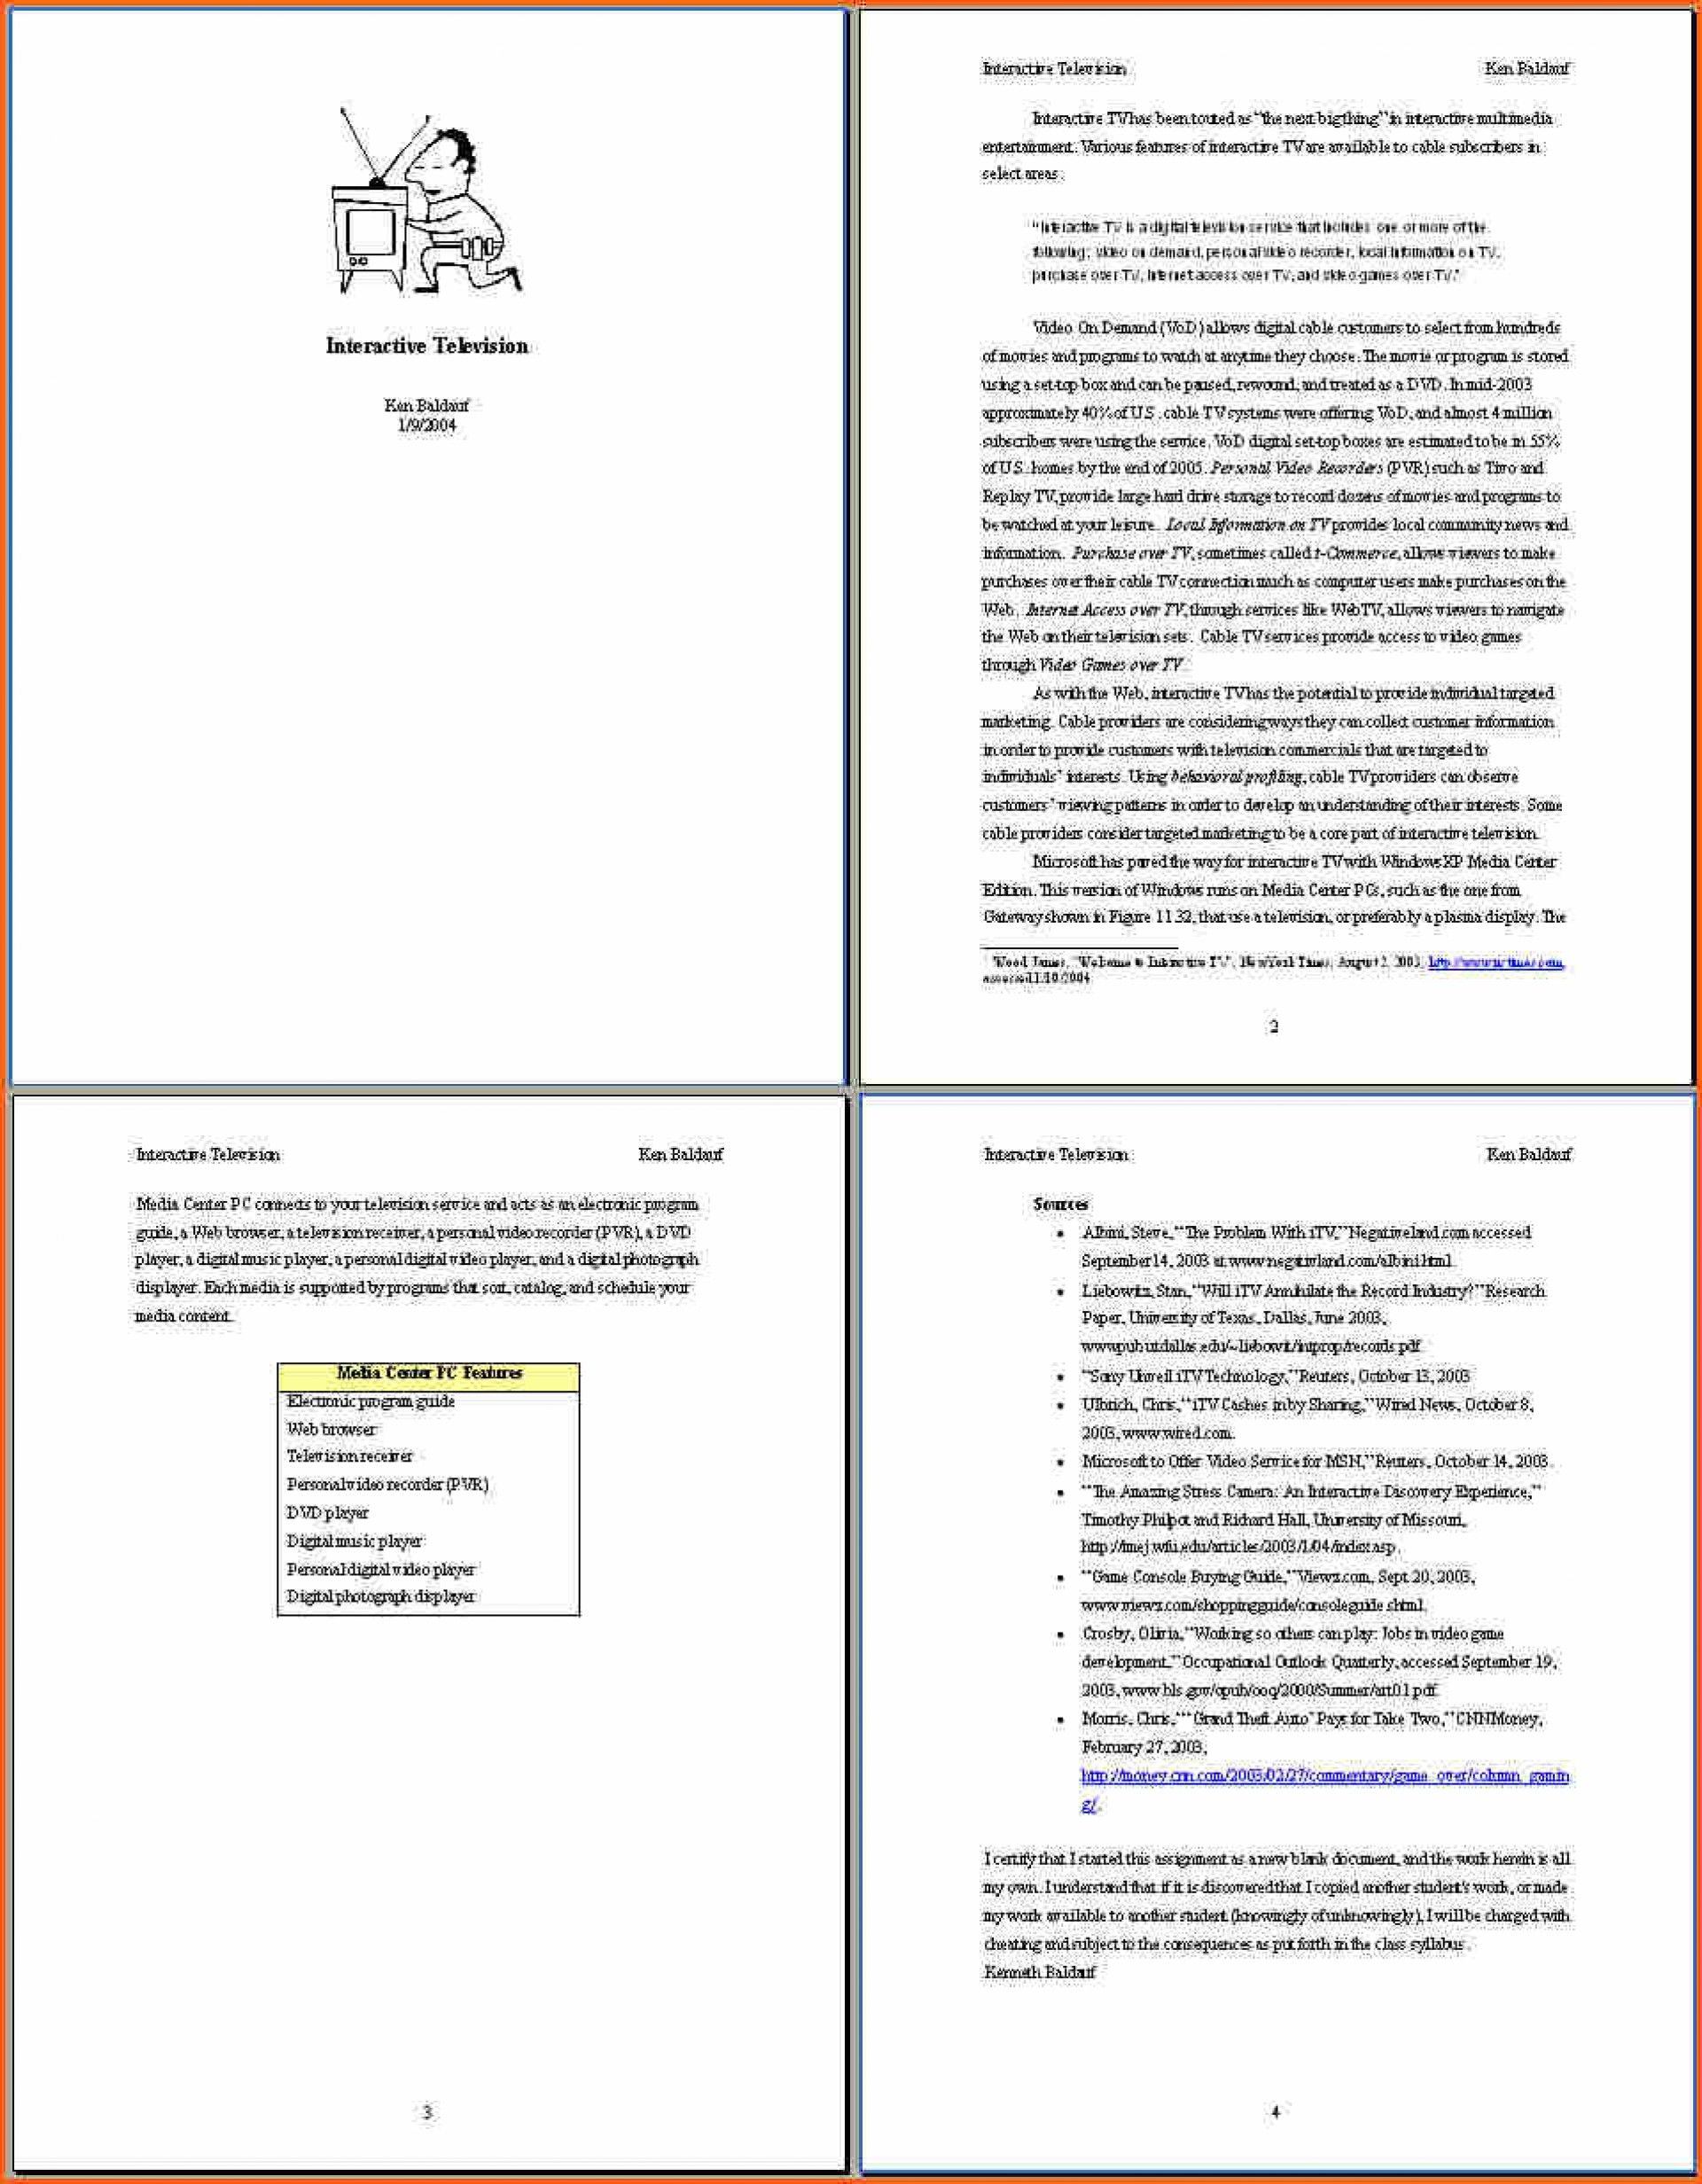 011 Apa Essay Template What Is An Style Paper A1 Best Outline Structure Format Word 2007 1920